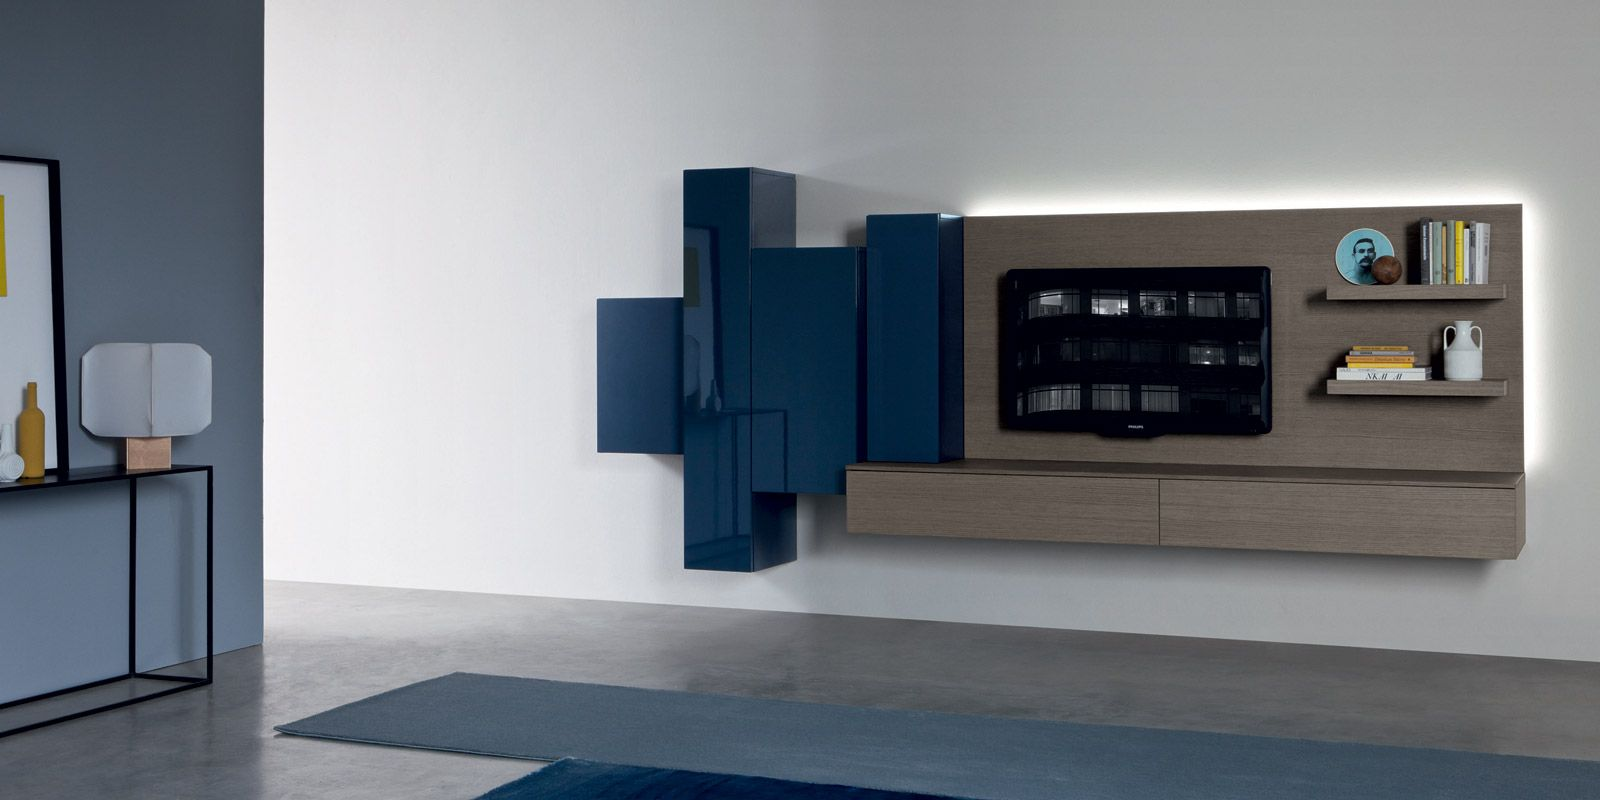 Appendo wall system by Sangiacomo | spaces of interest | Pinterest ...